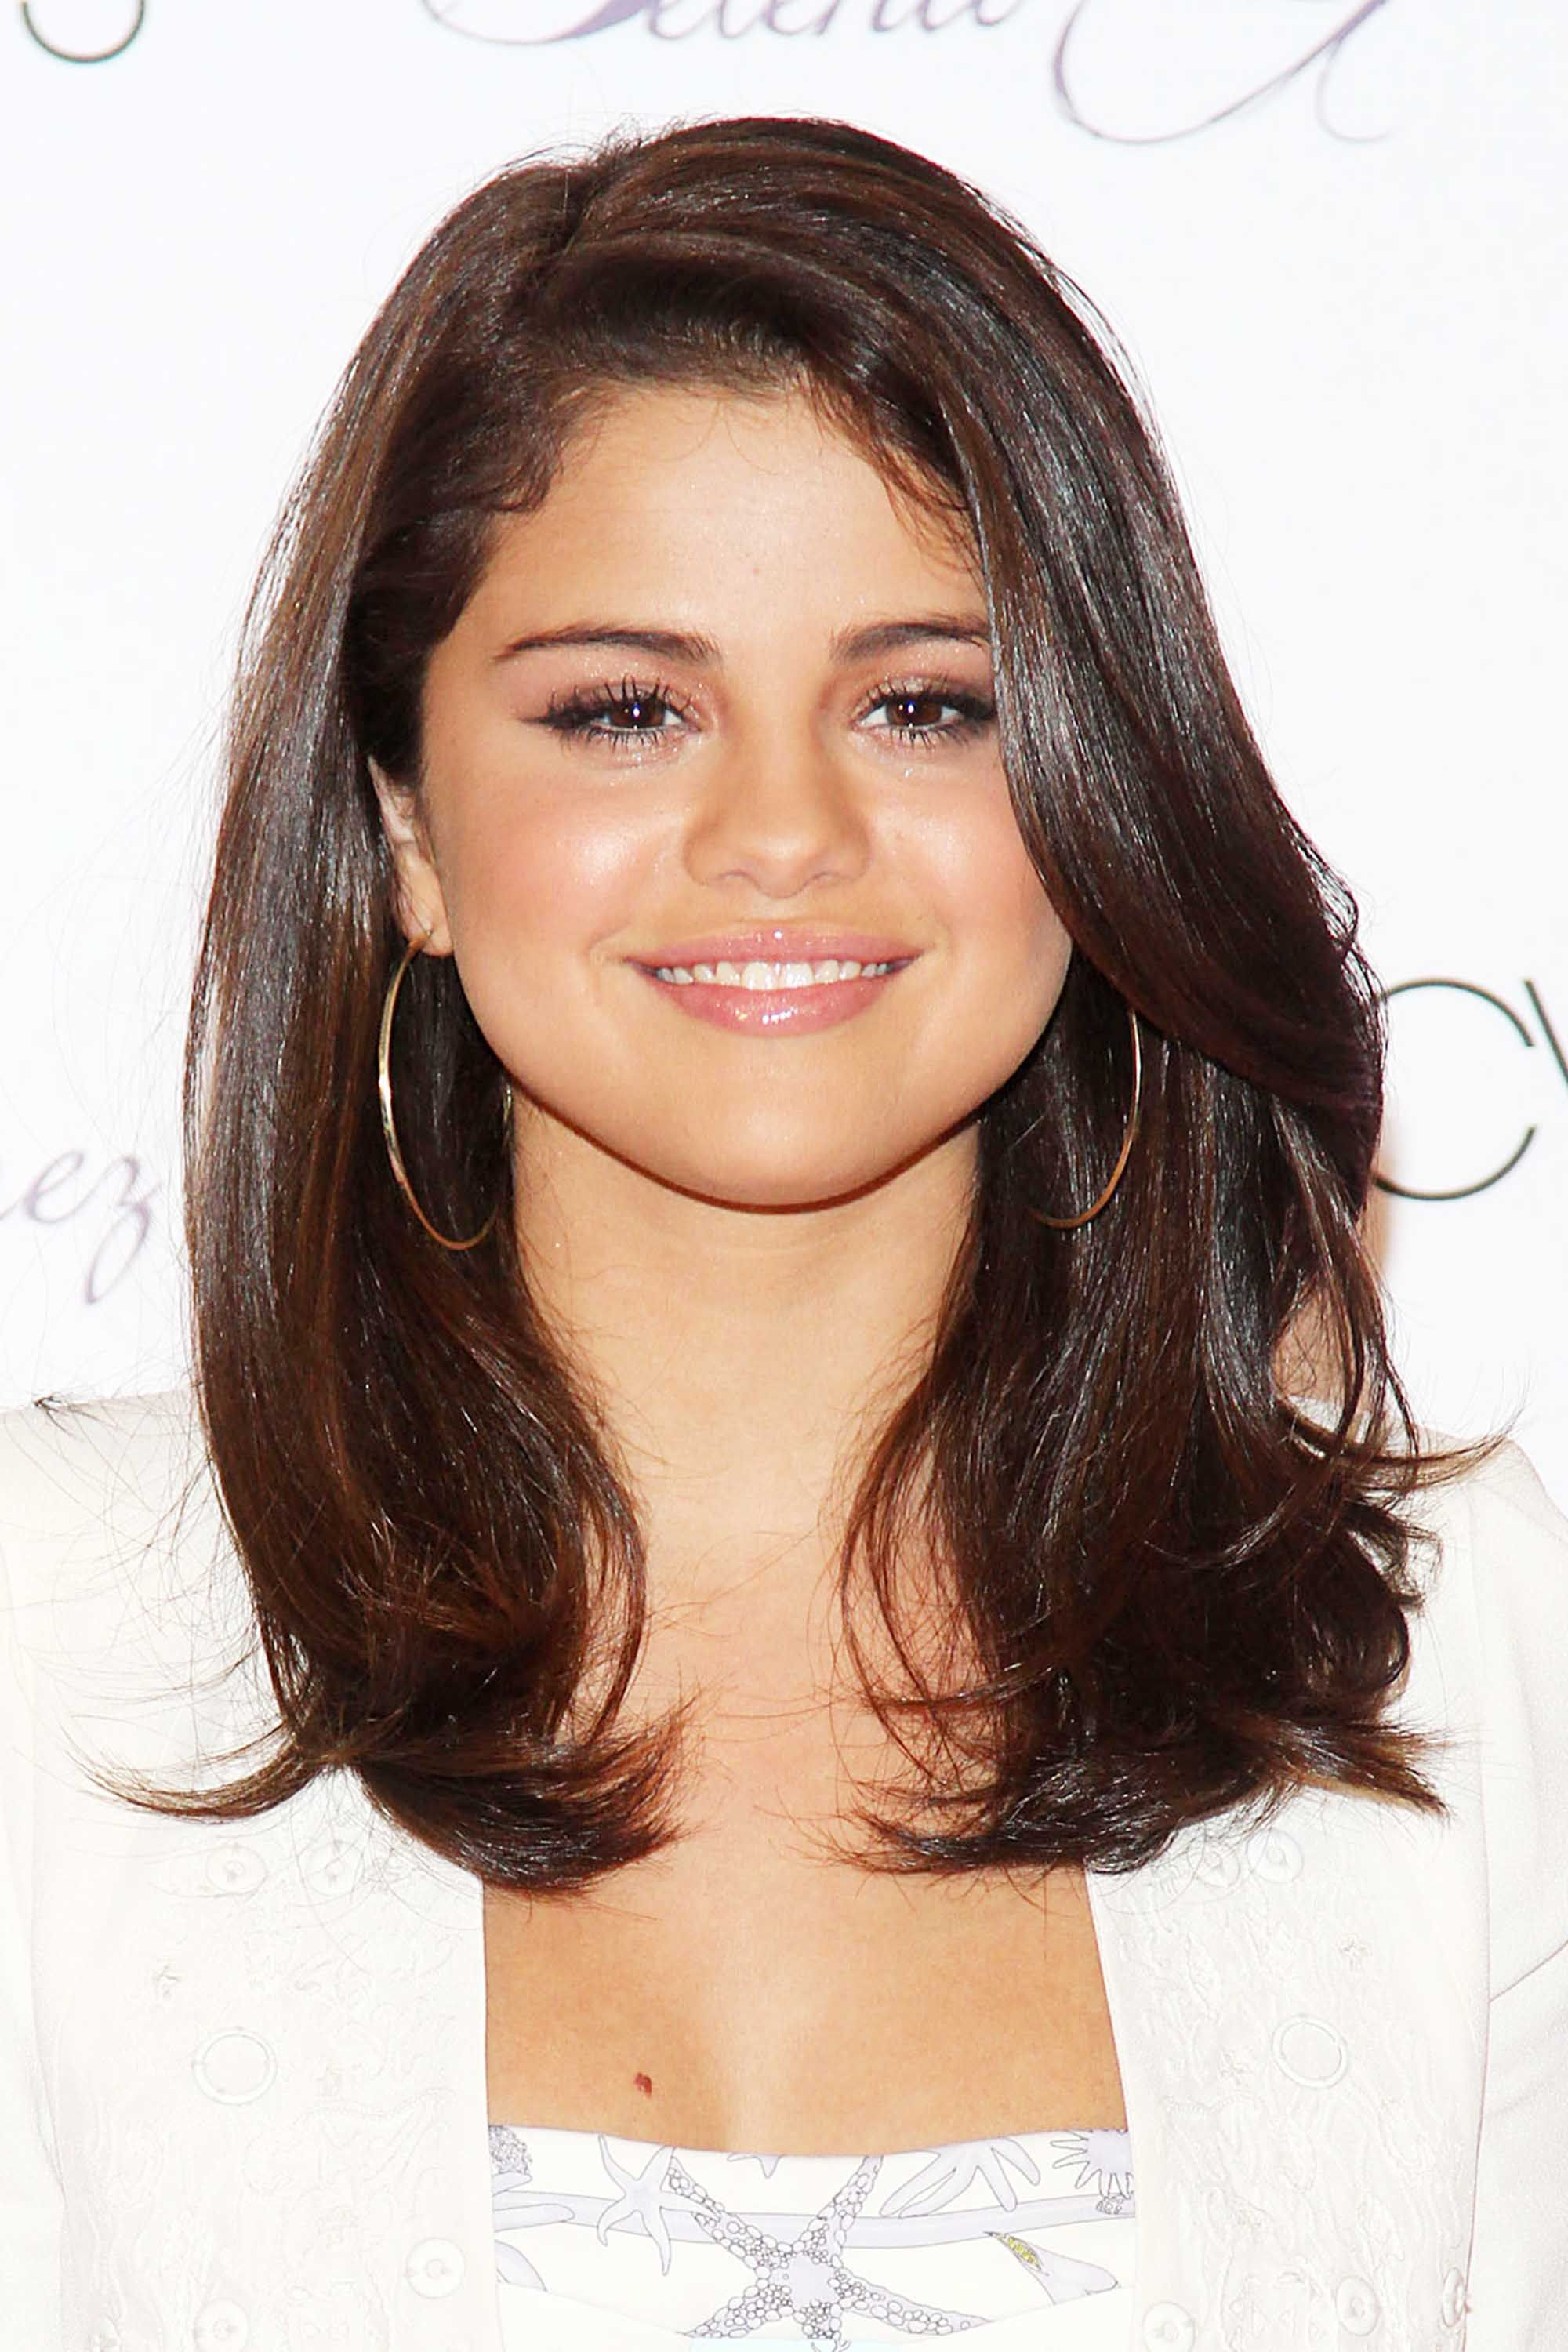 Selena Gomez Hair Style best selena gomez hairstyles 32 hair ideas from selena gomez 3546 by wearticles.com